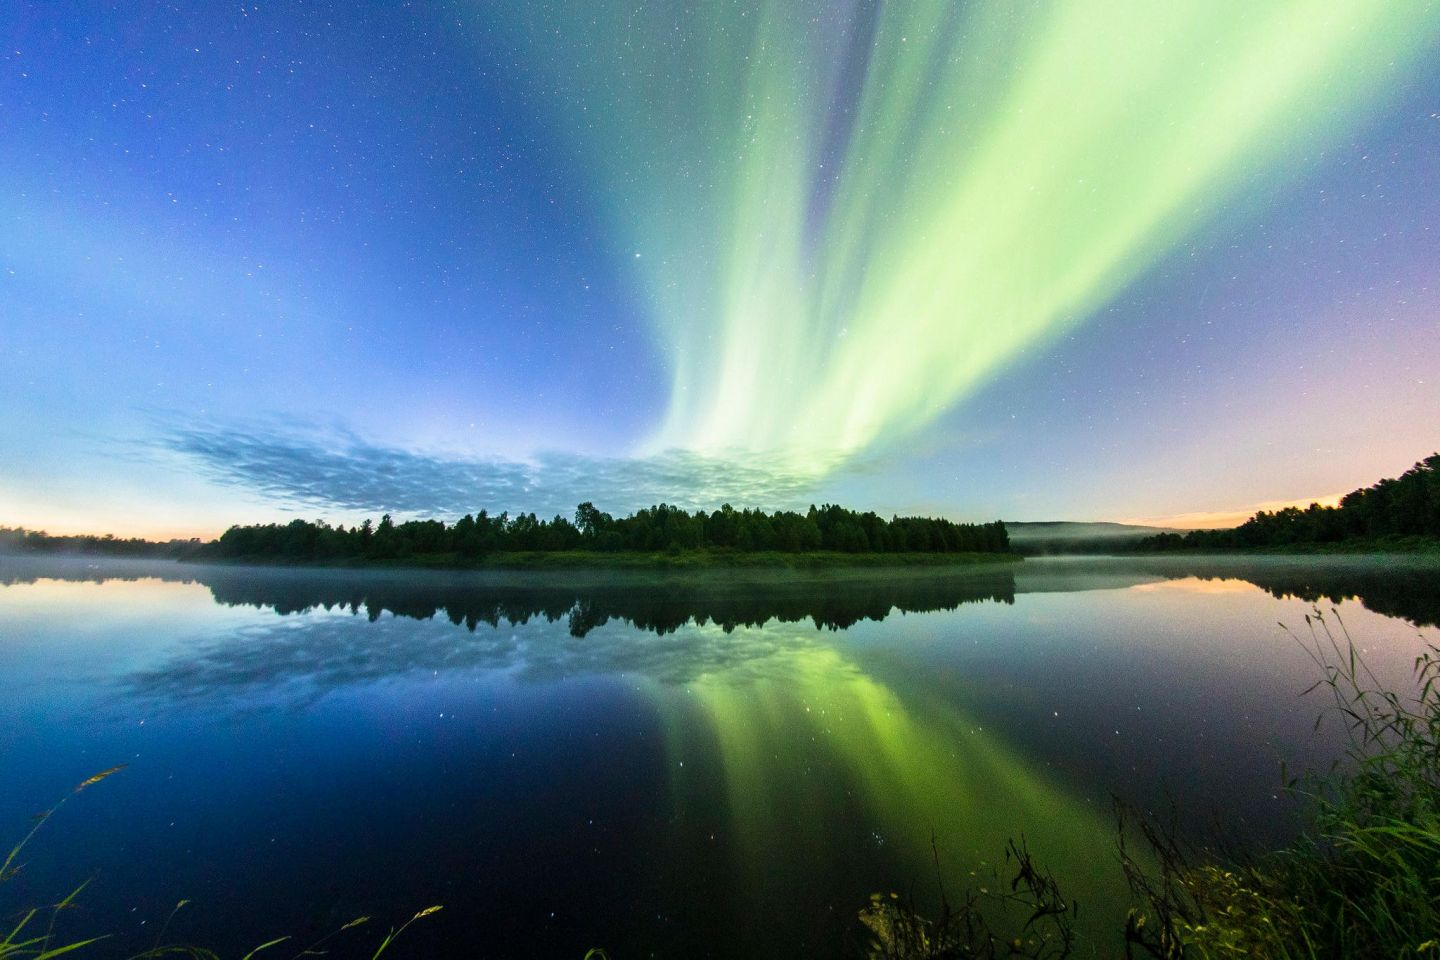 Northern Lights over the waters of Lapland, Europe's last wilderness